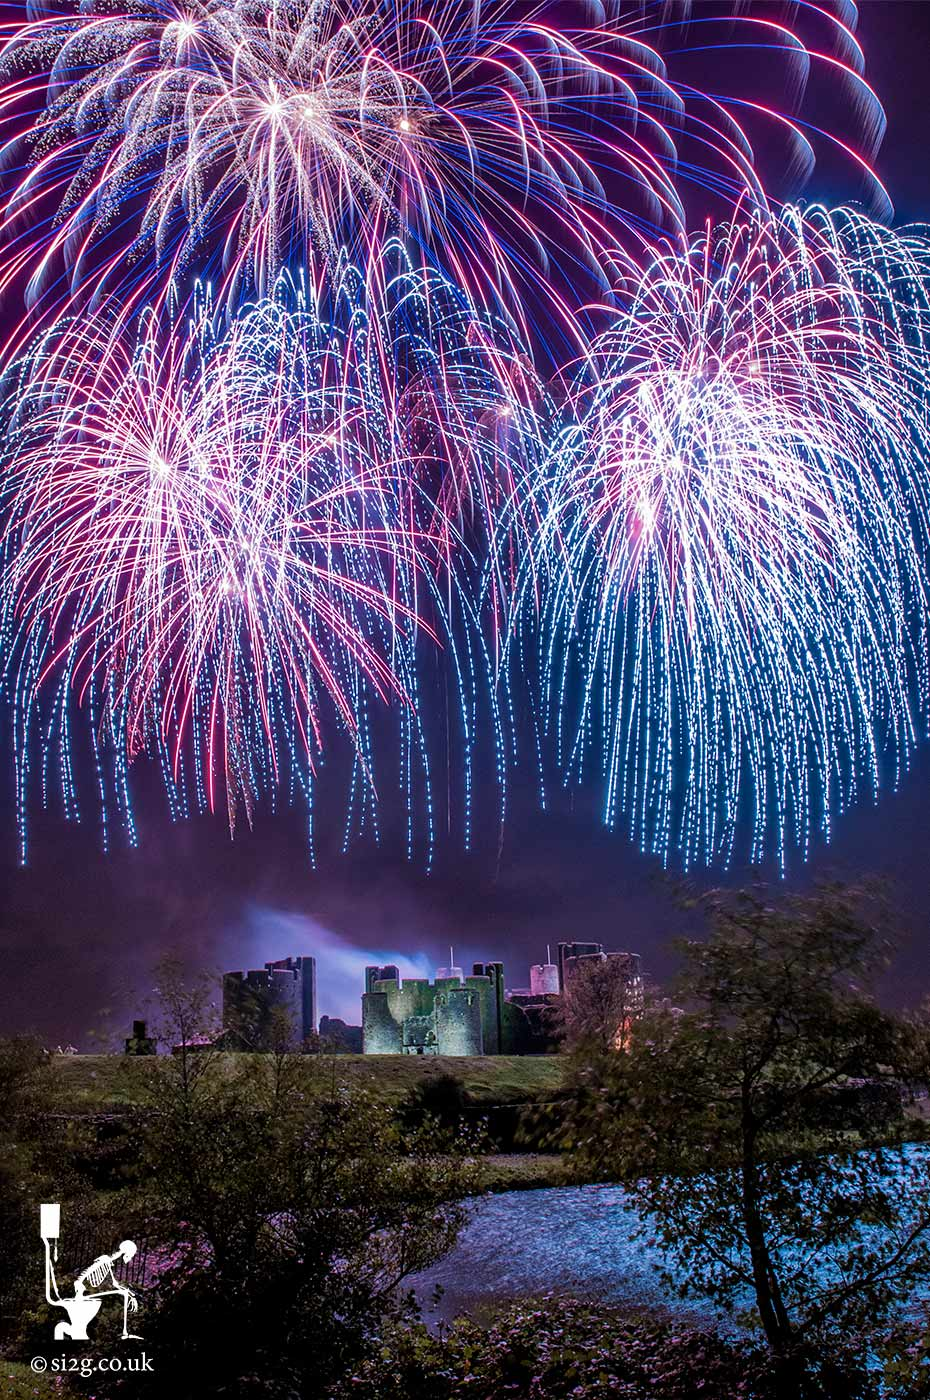 Caerphilly Castle Fireworks Display - Tourism photos of South Wales